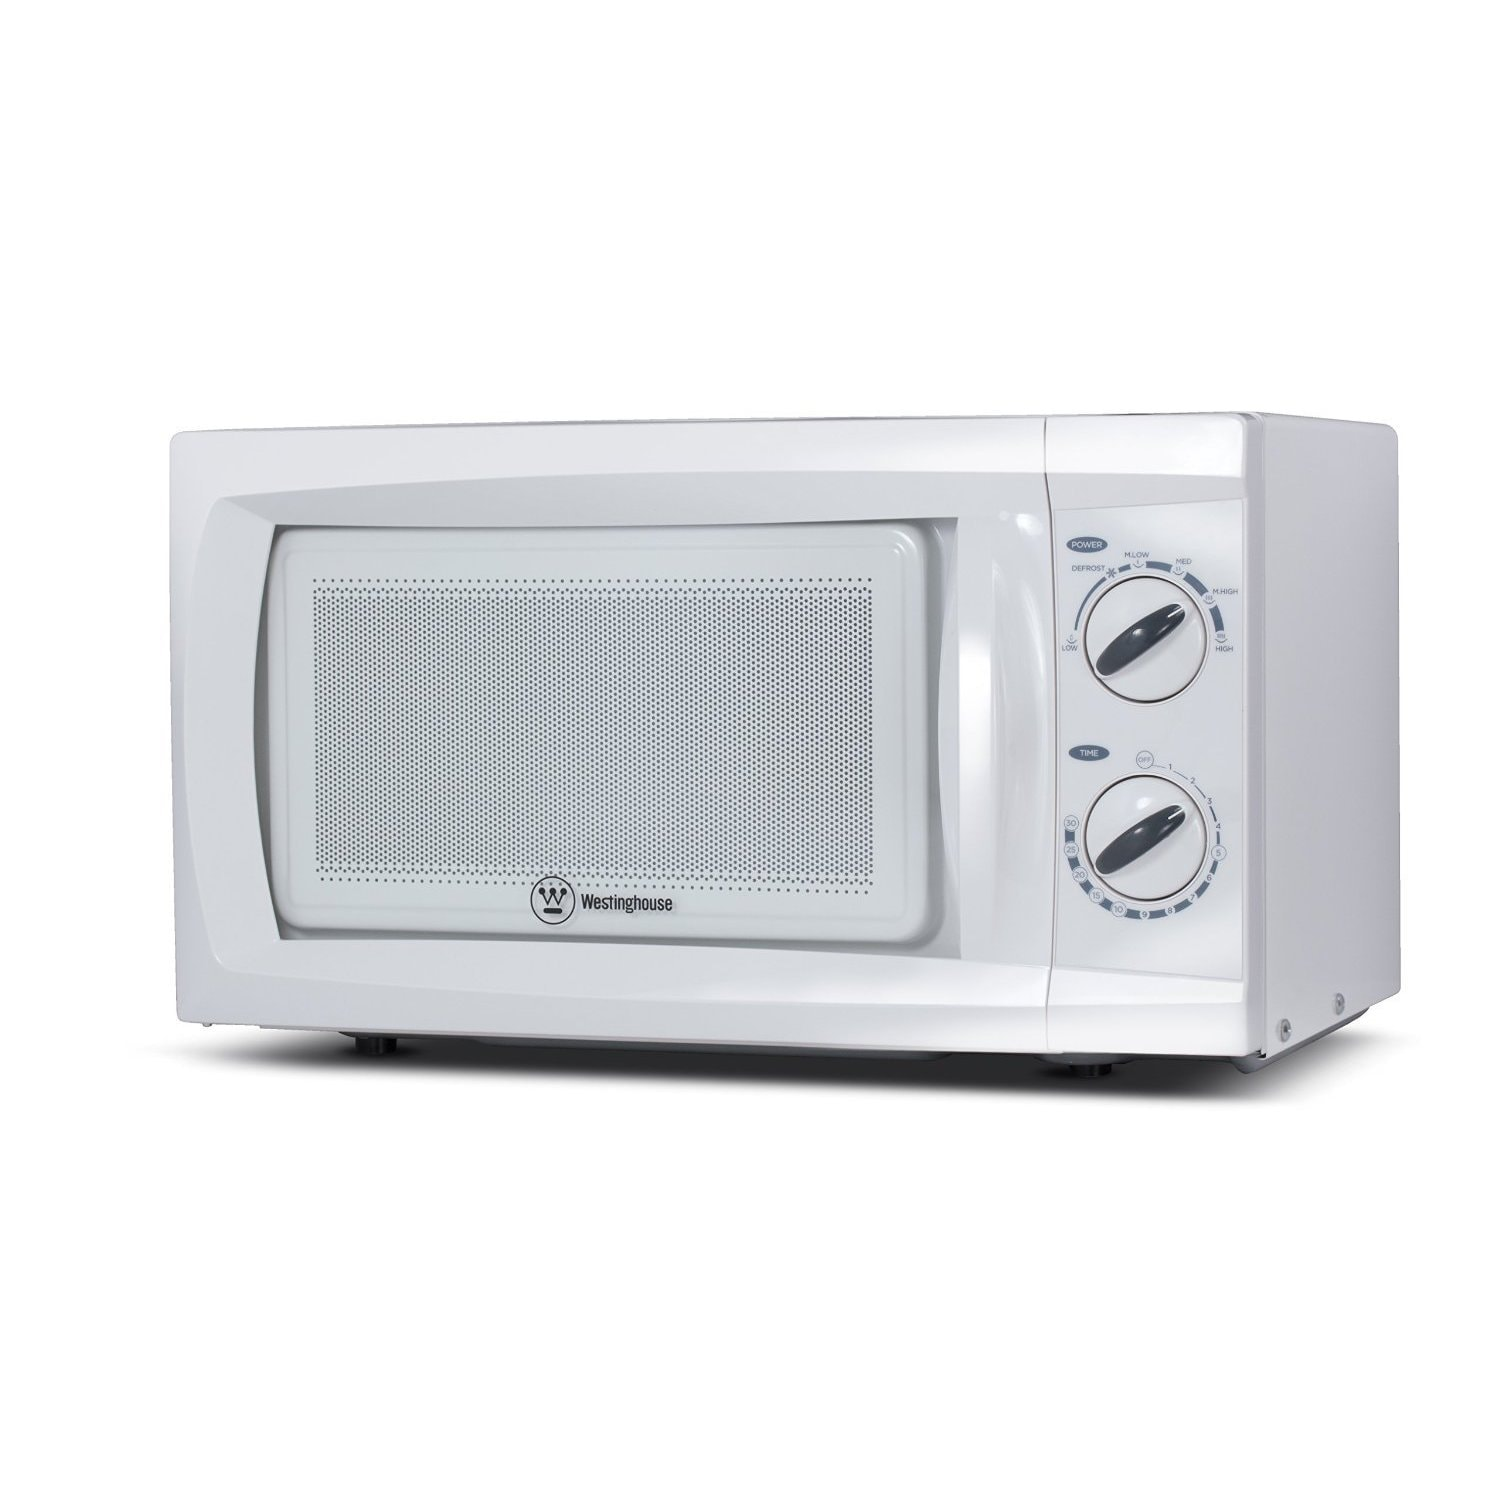 Wcm660w White 0 6 Cubic Foot Microwave